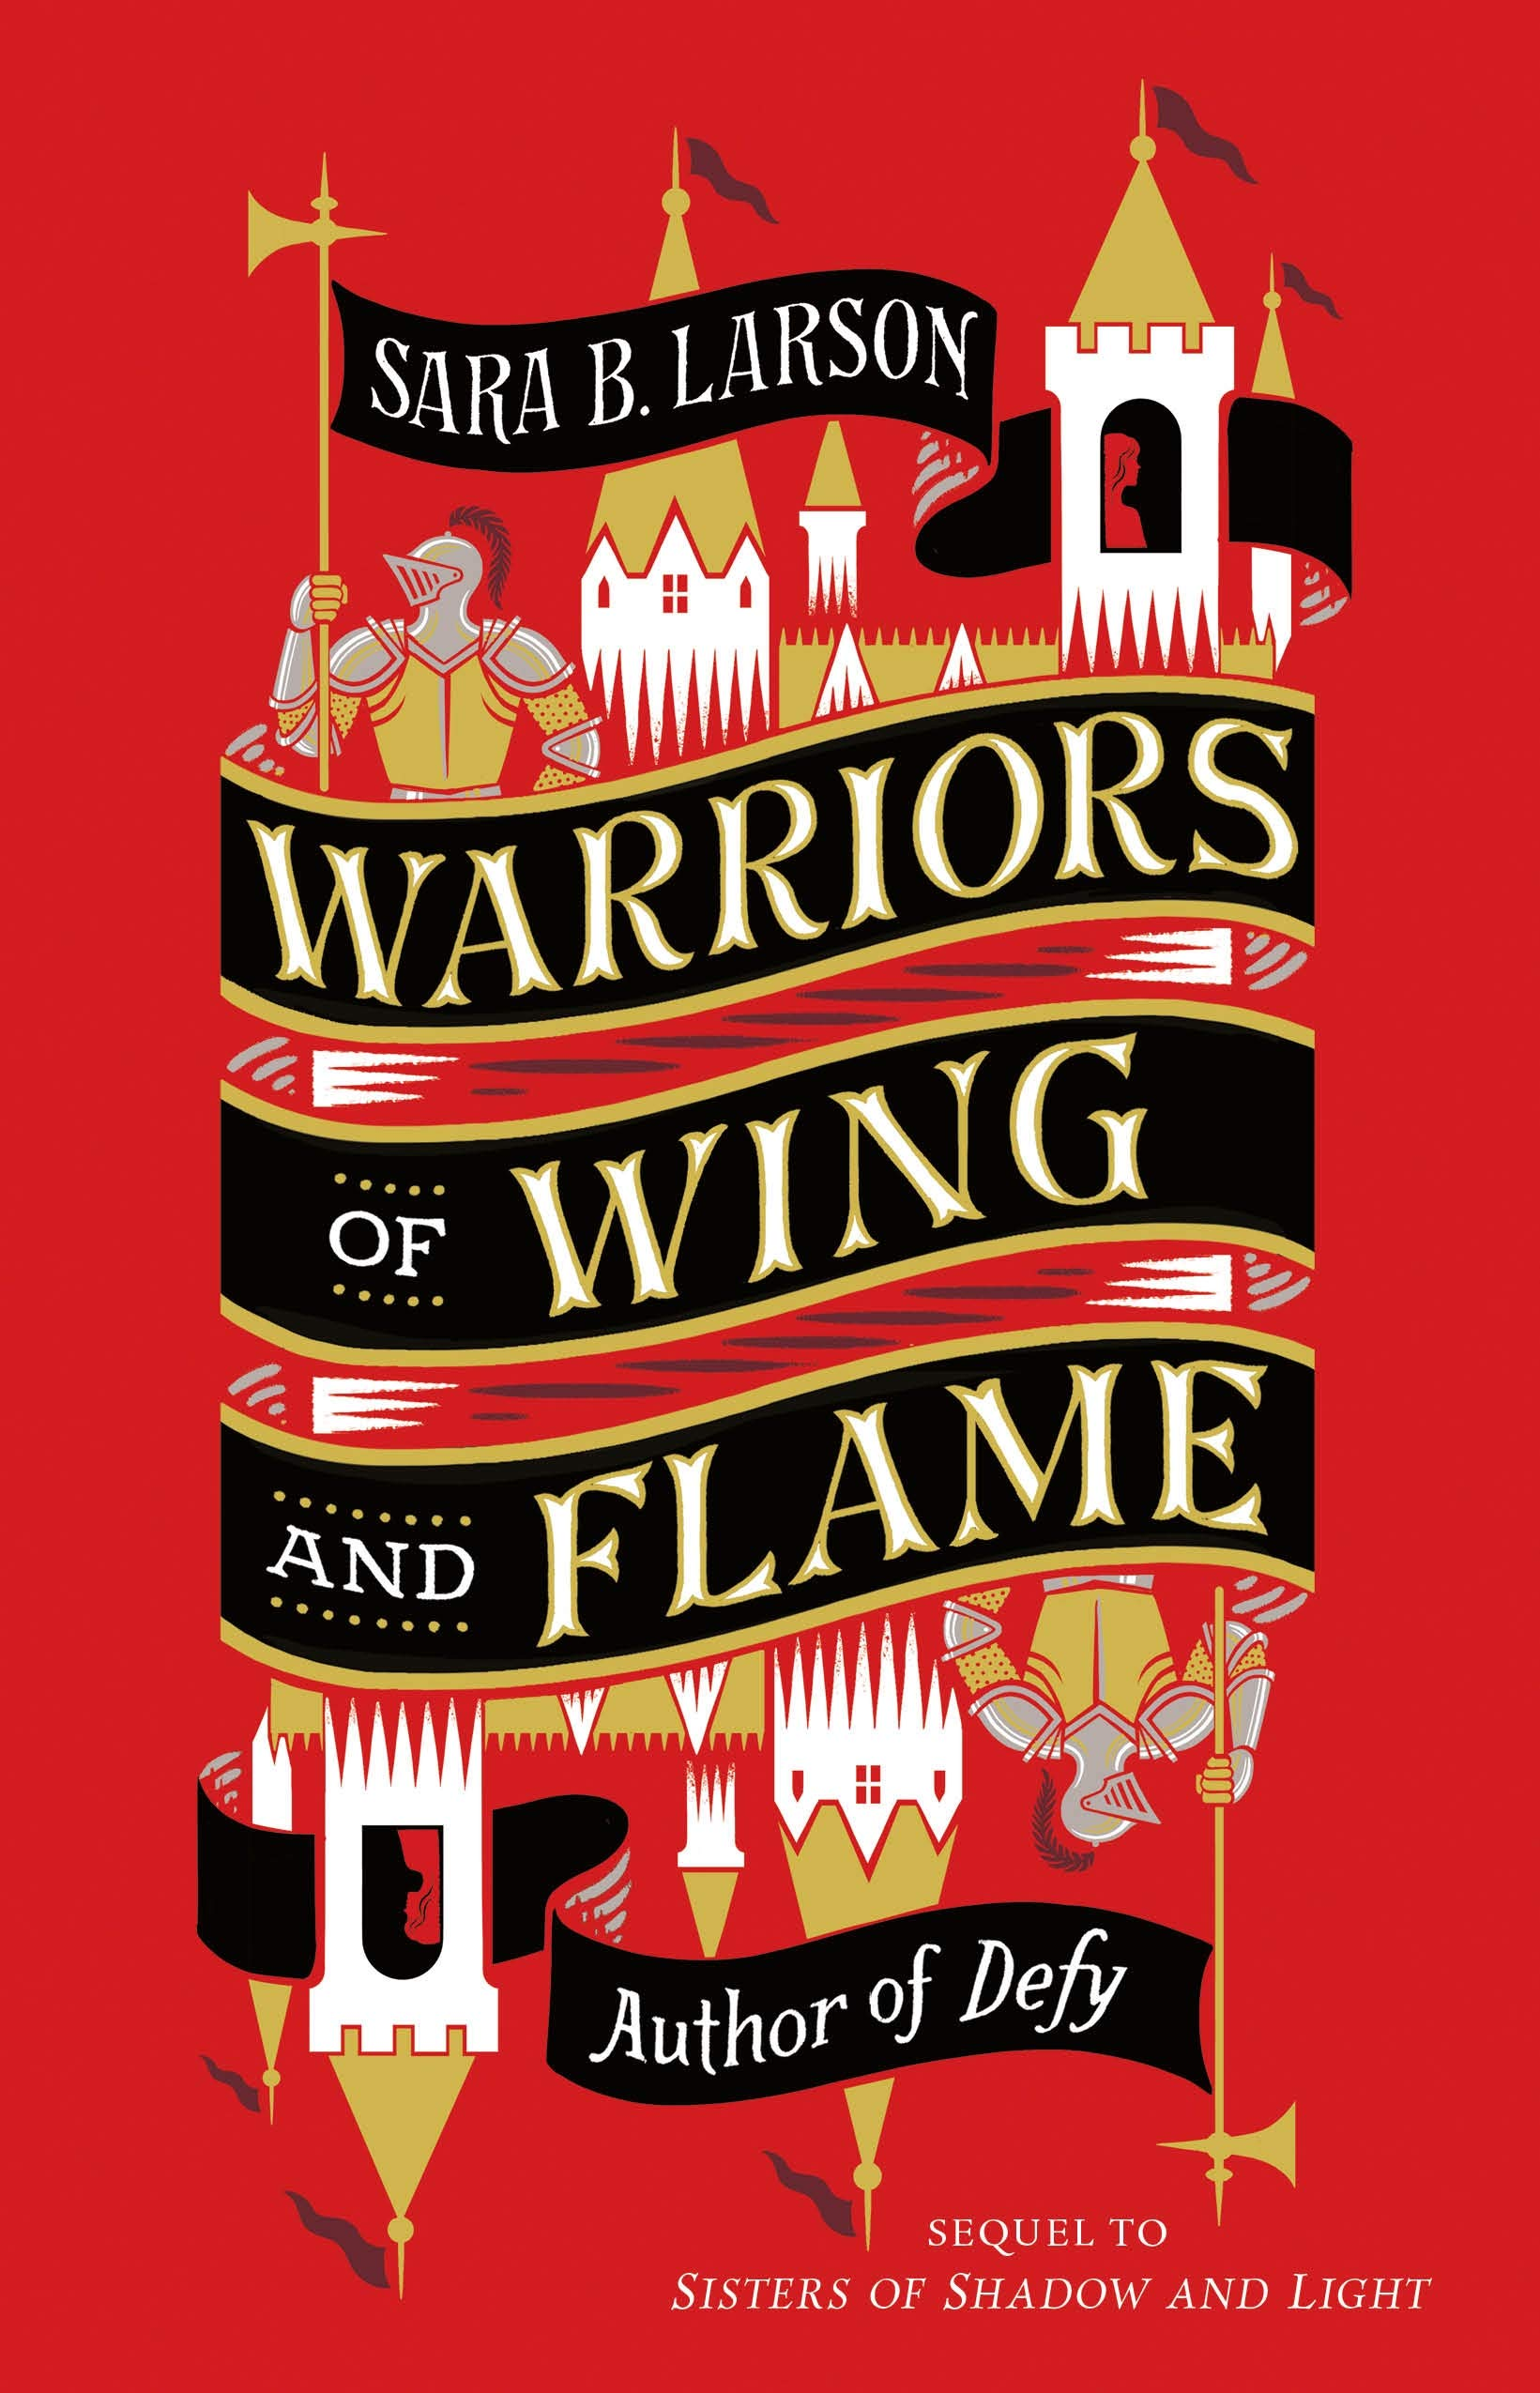 Blog Tour & Giveaway: Warriors of Wing and Flame by Sara B. Larson